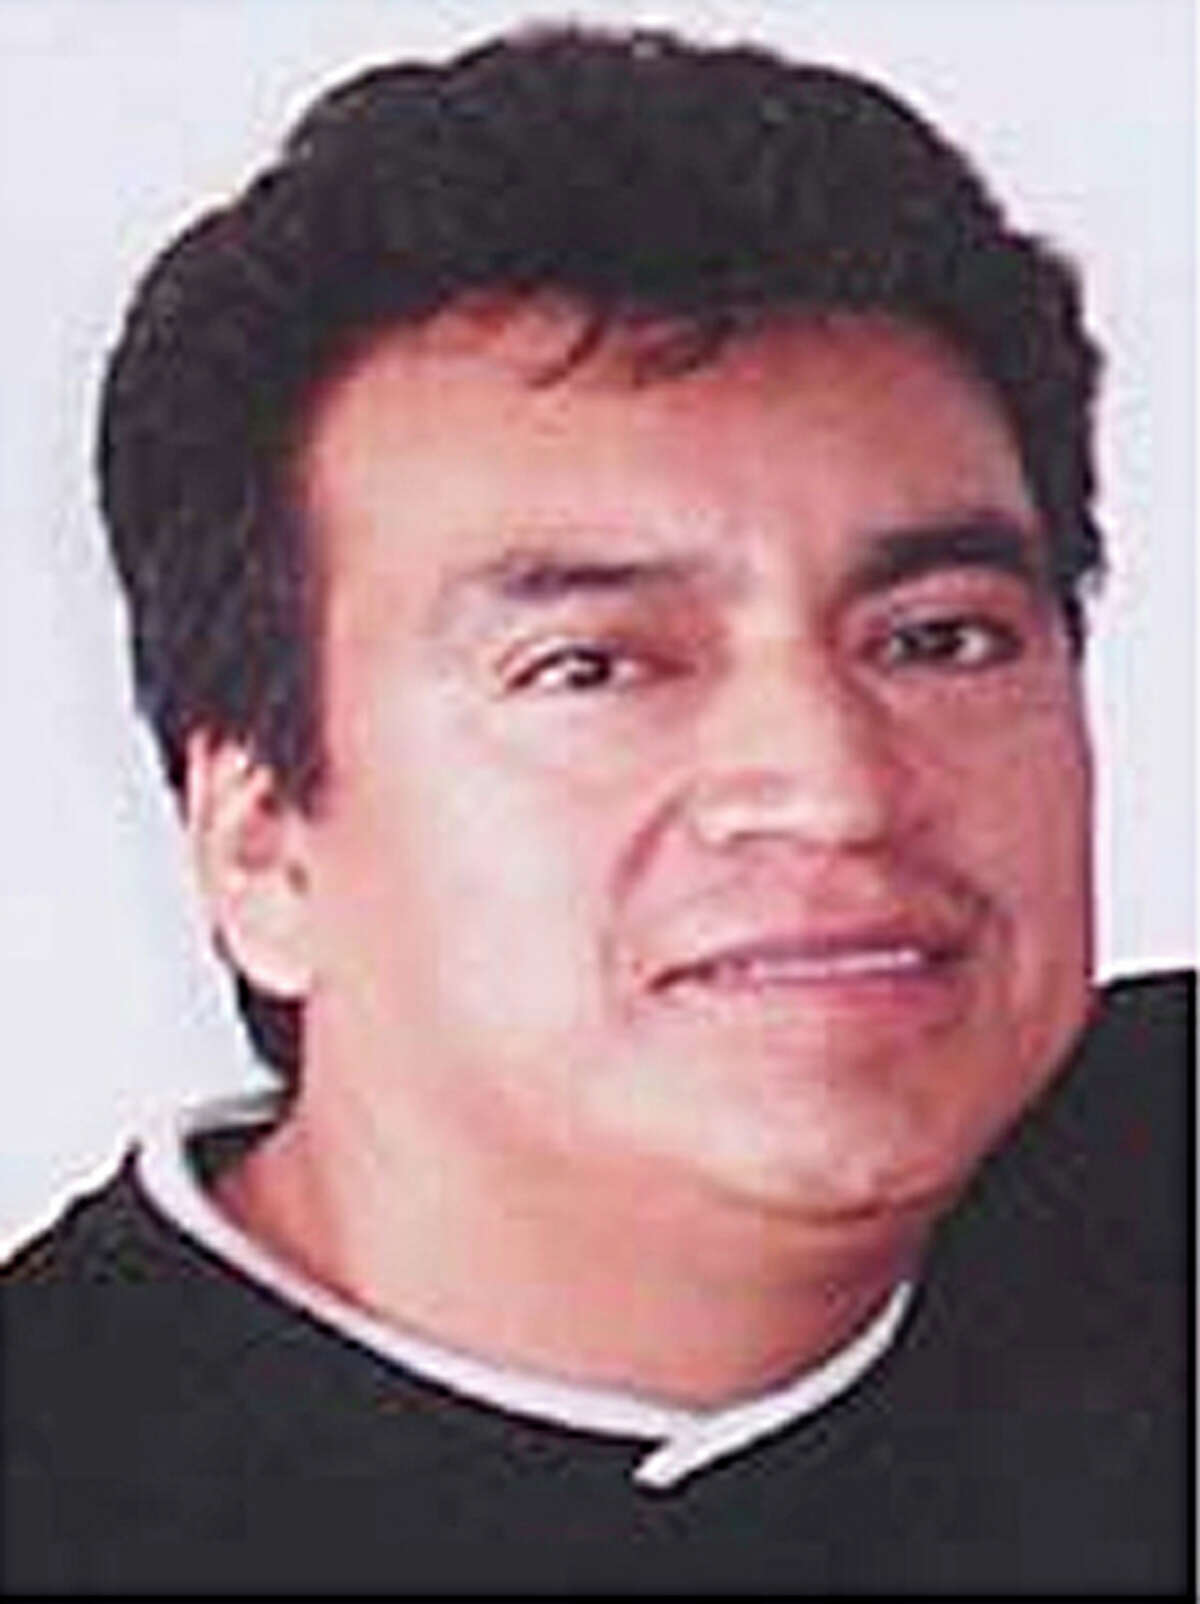 """(PROVIDED PHOTO BY THE FBI) Gerardo """"El Gallo"""" Salazar Federal police in Mexico say they arrested Gerardo Salazar who is on the FBI's most wanted list for allegedly trafficking women and minors for prostitution in Houston. Tuesday, March 2, 2010, in Houston."""